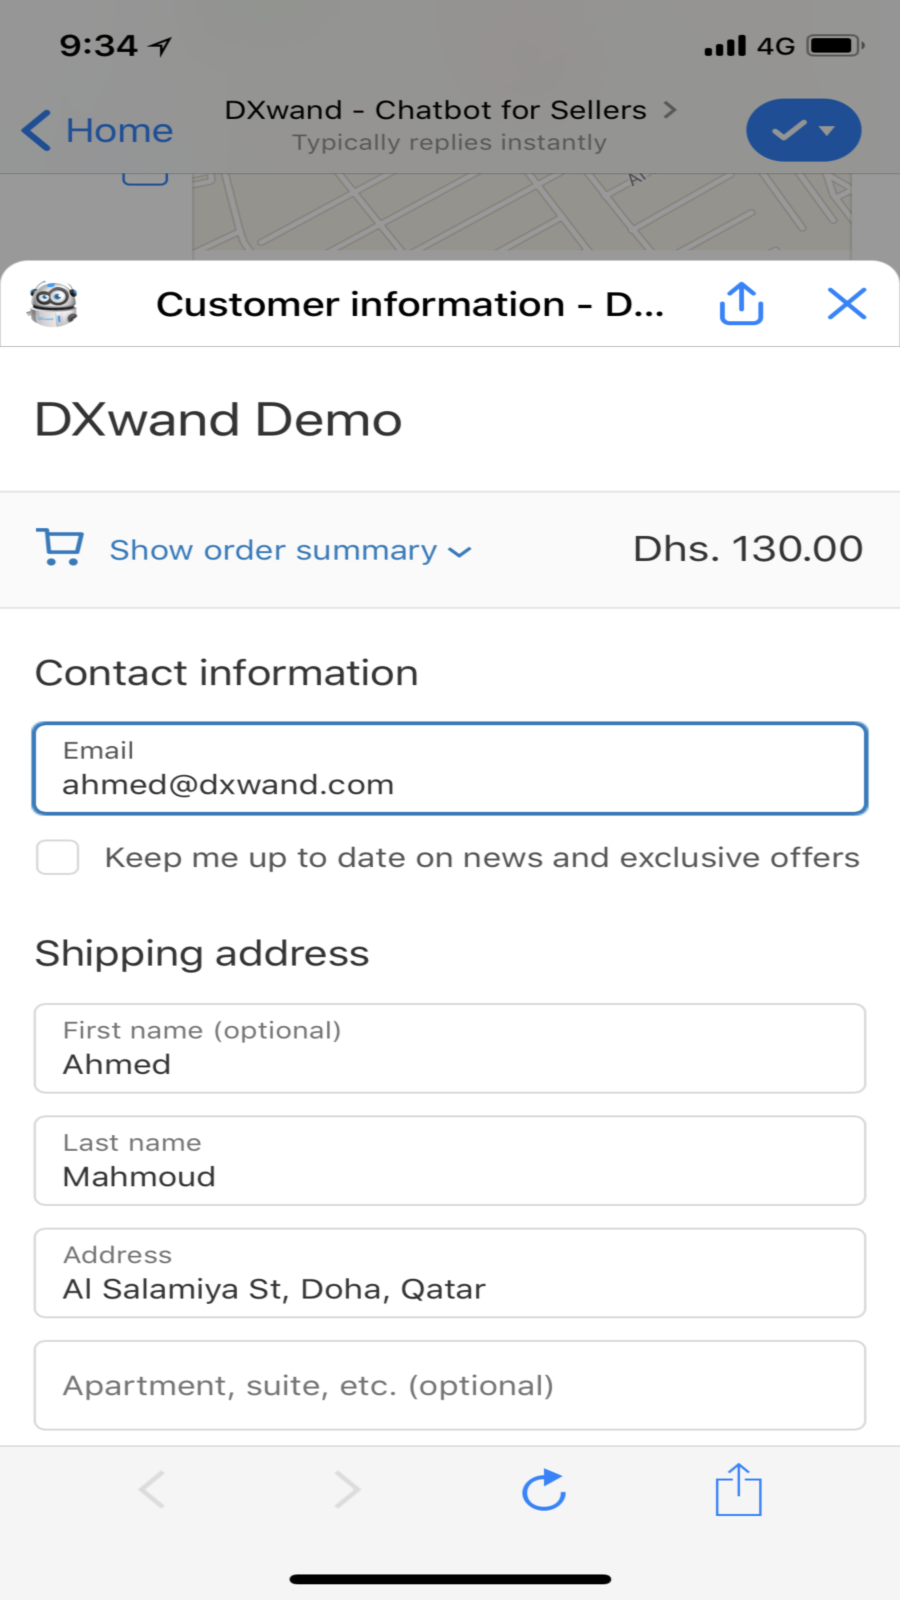 Chatbot redirect to Shopify Checkout with order details set